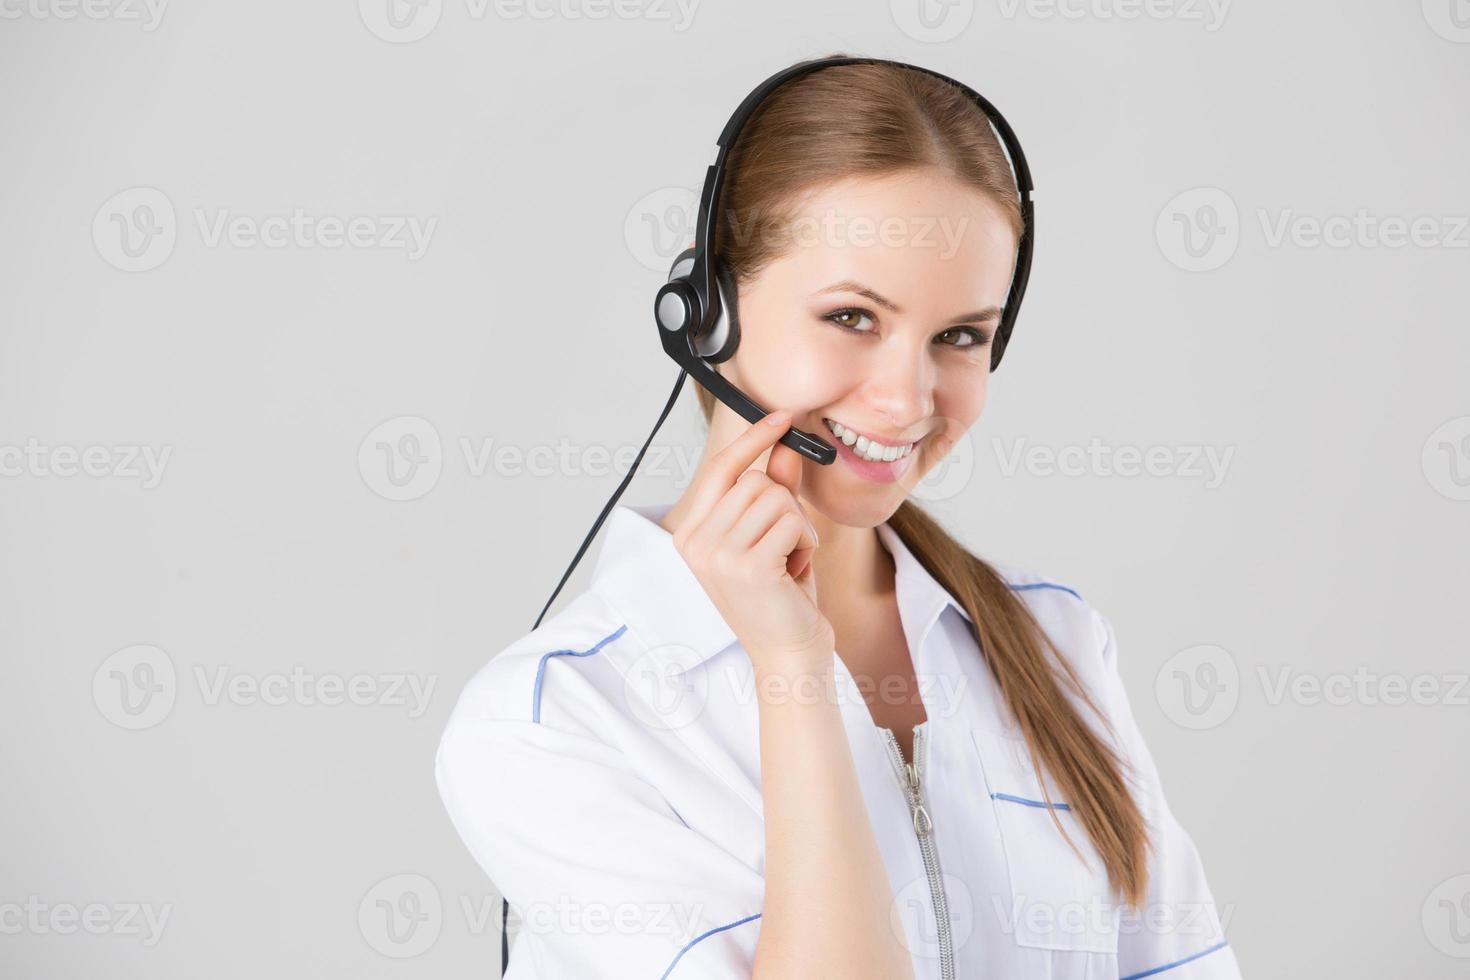 Woman customer service worker, call center smiling operator photo